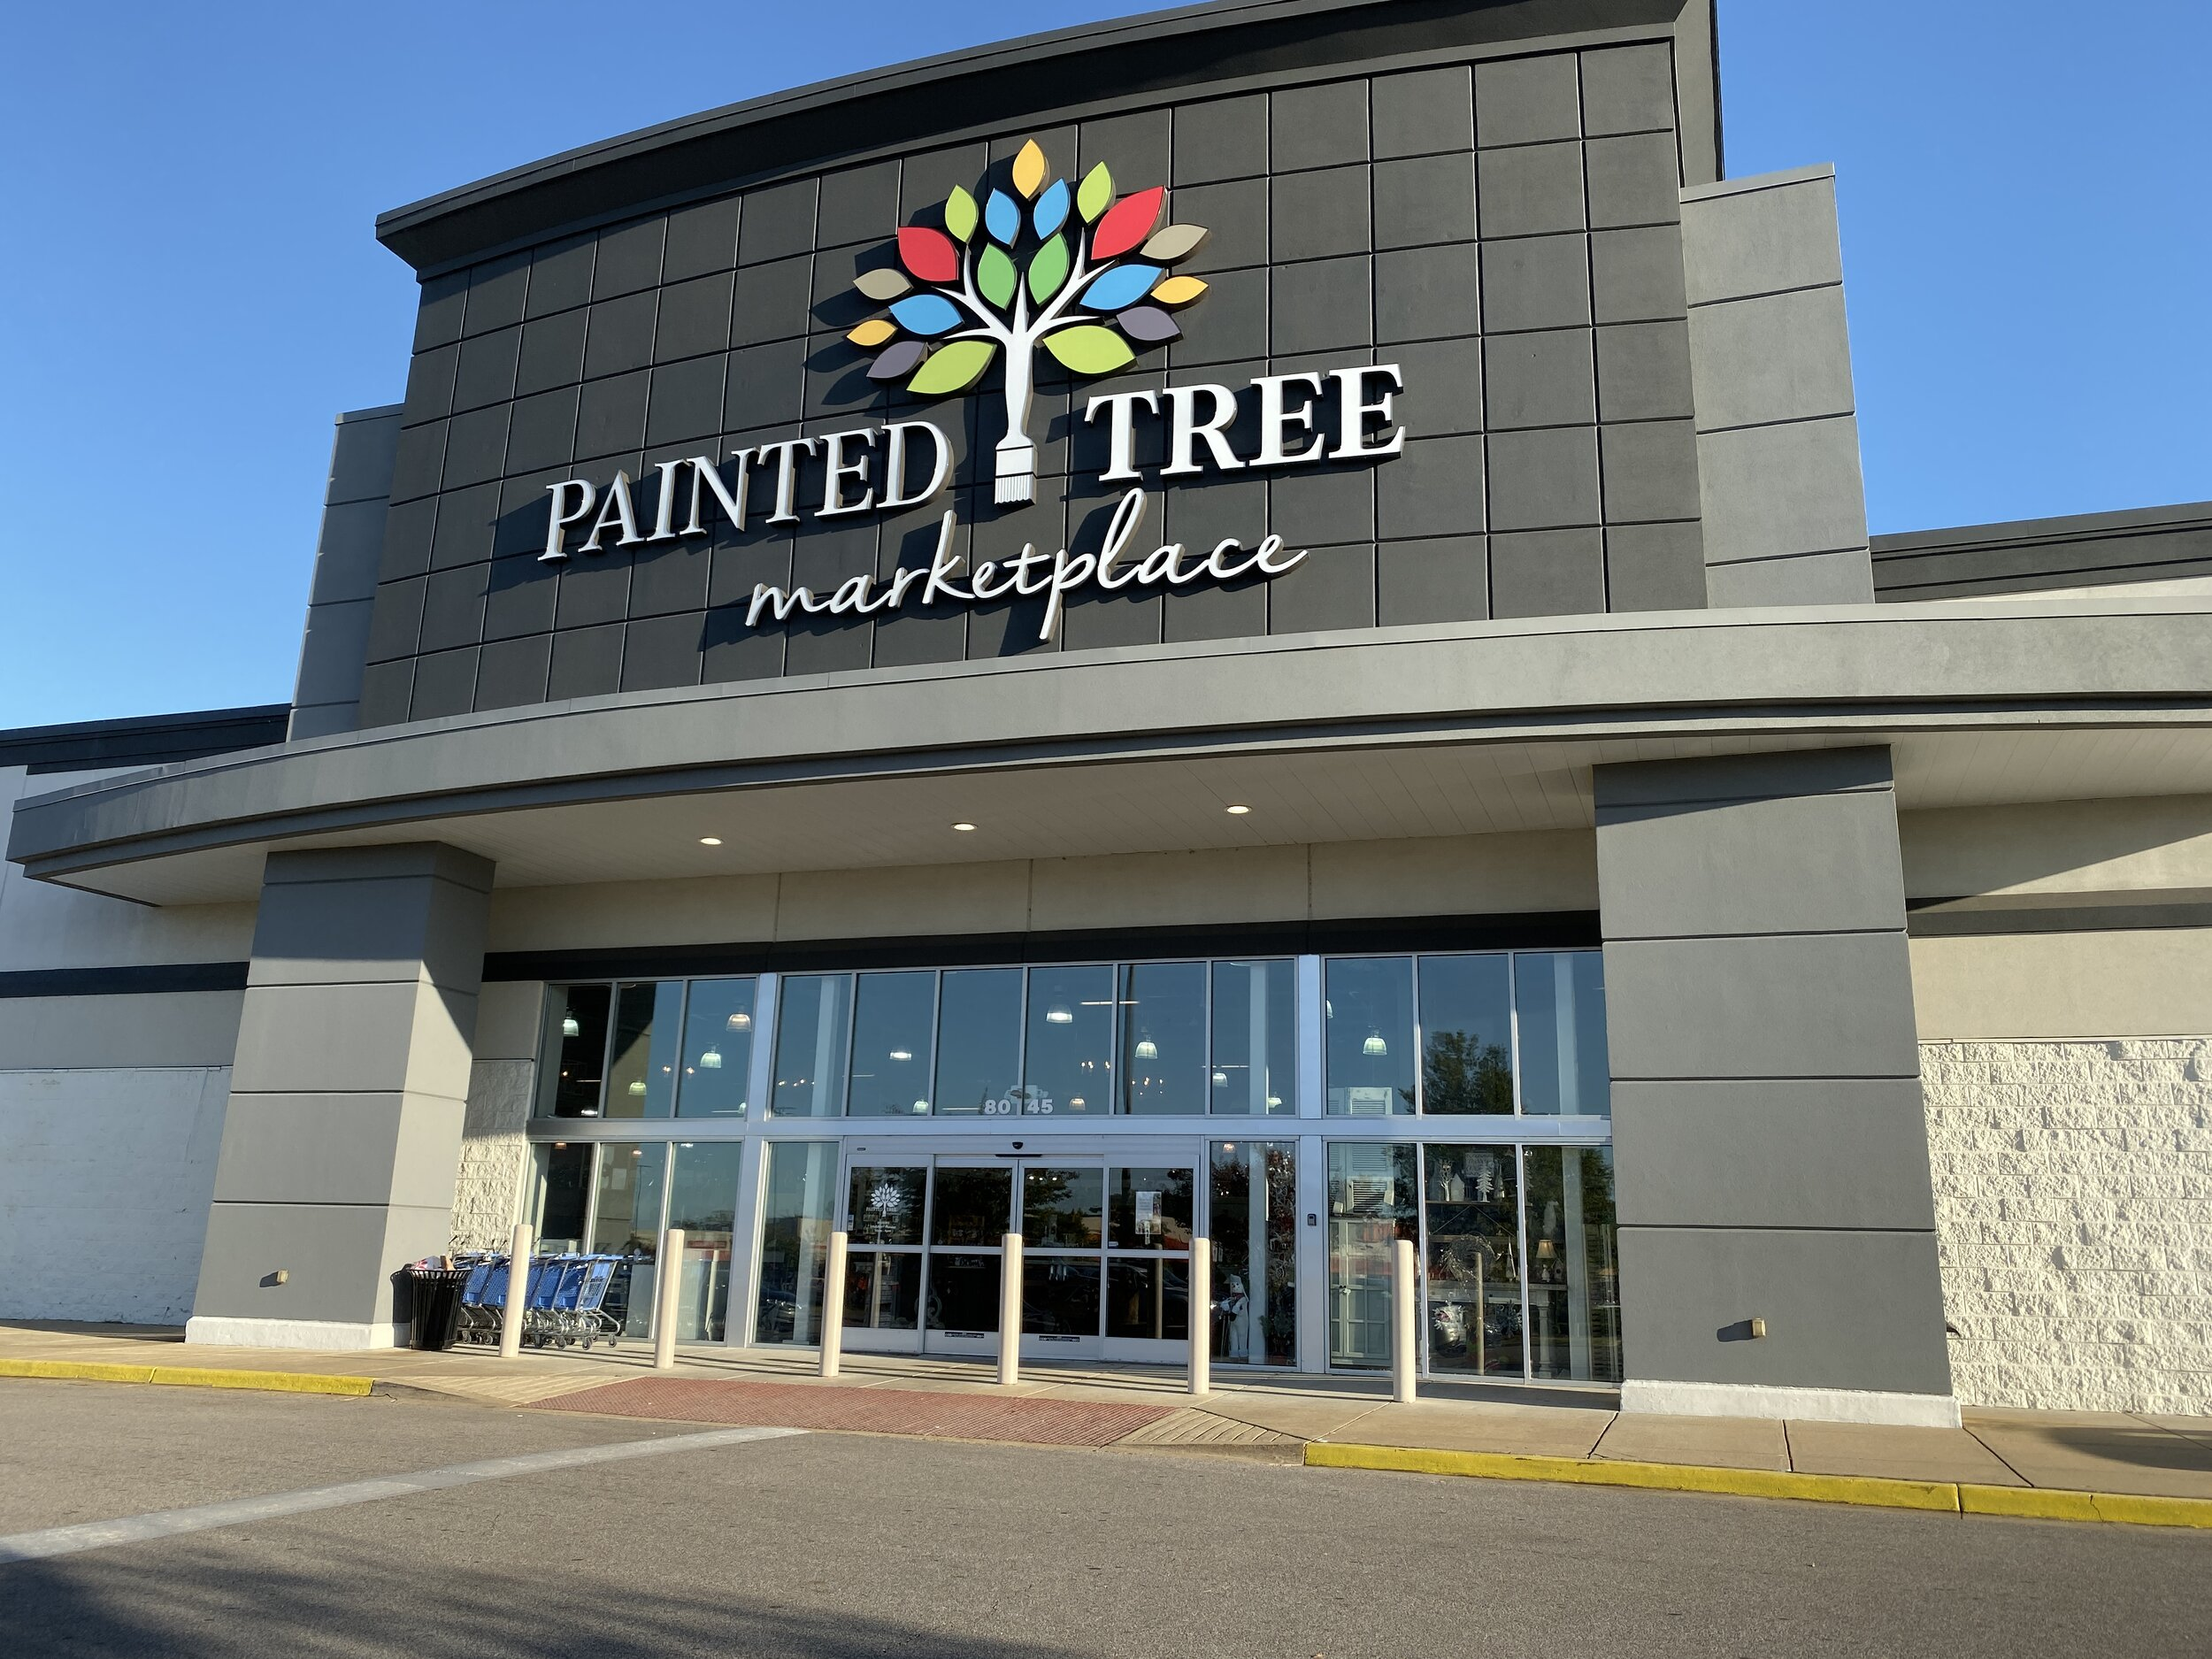 Painted Tree Marketplace  8045 Giacosa Place  Memphis, Tennessee 38133